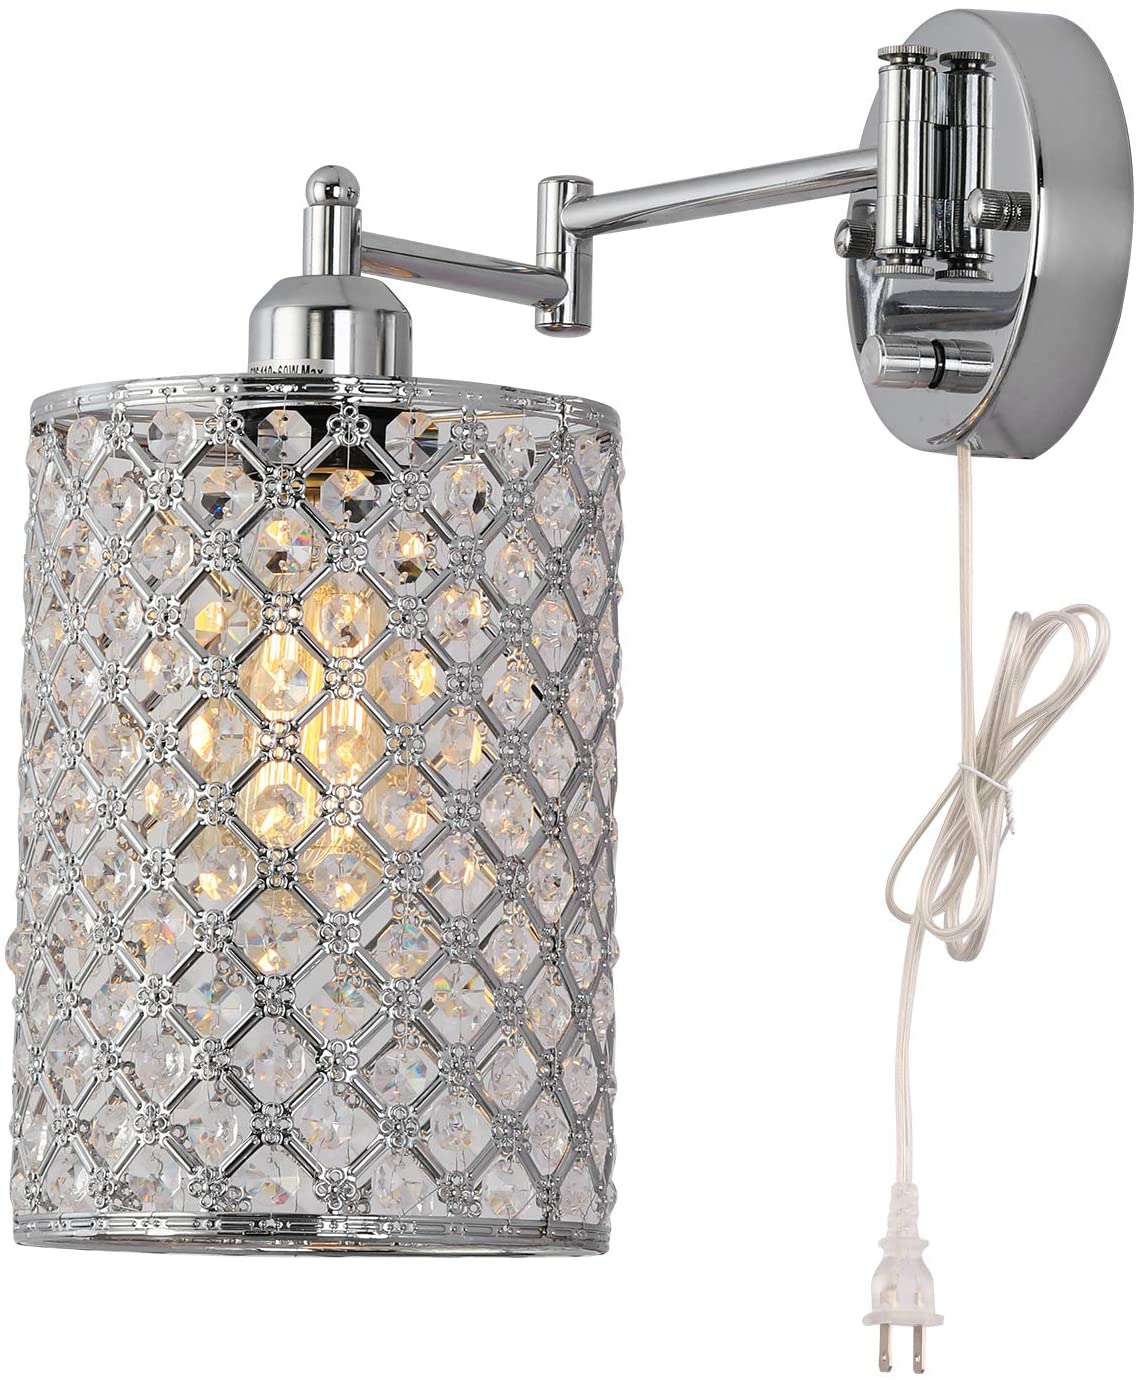 Kingmi Dimmable Crystal Industrial Swing Arm Wall Sconce Plug-in Wall Light On/Off Rotary Switch on backplates 4.9-Foot Clear Cord